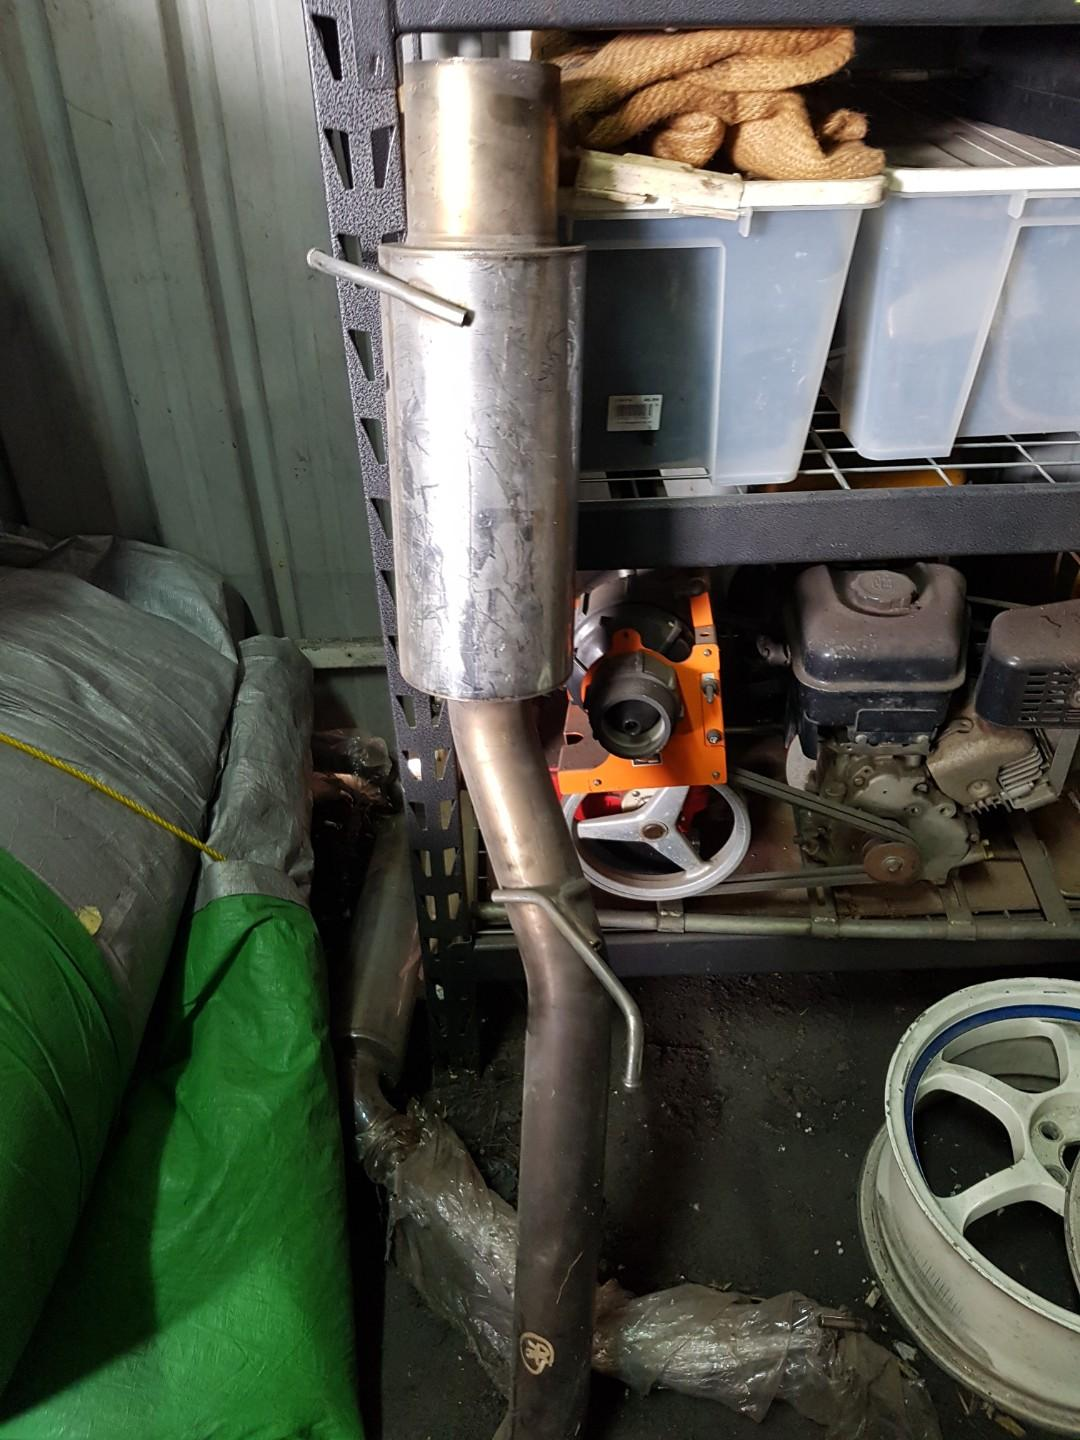 Used apexi exhaust